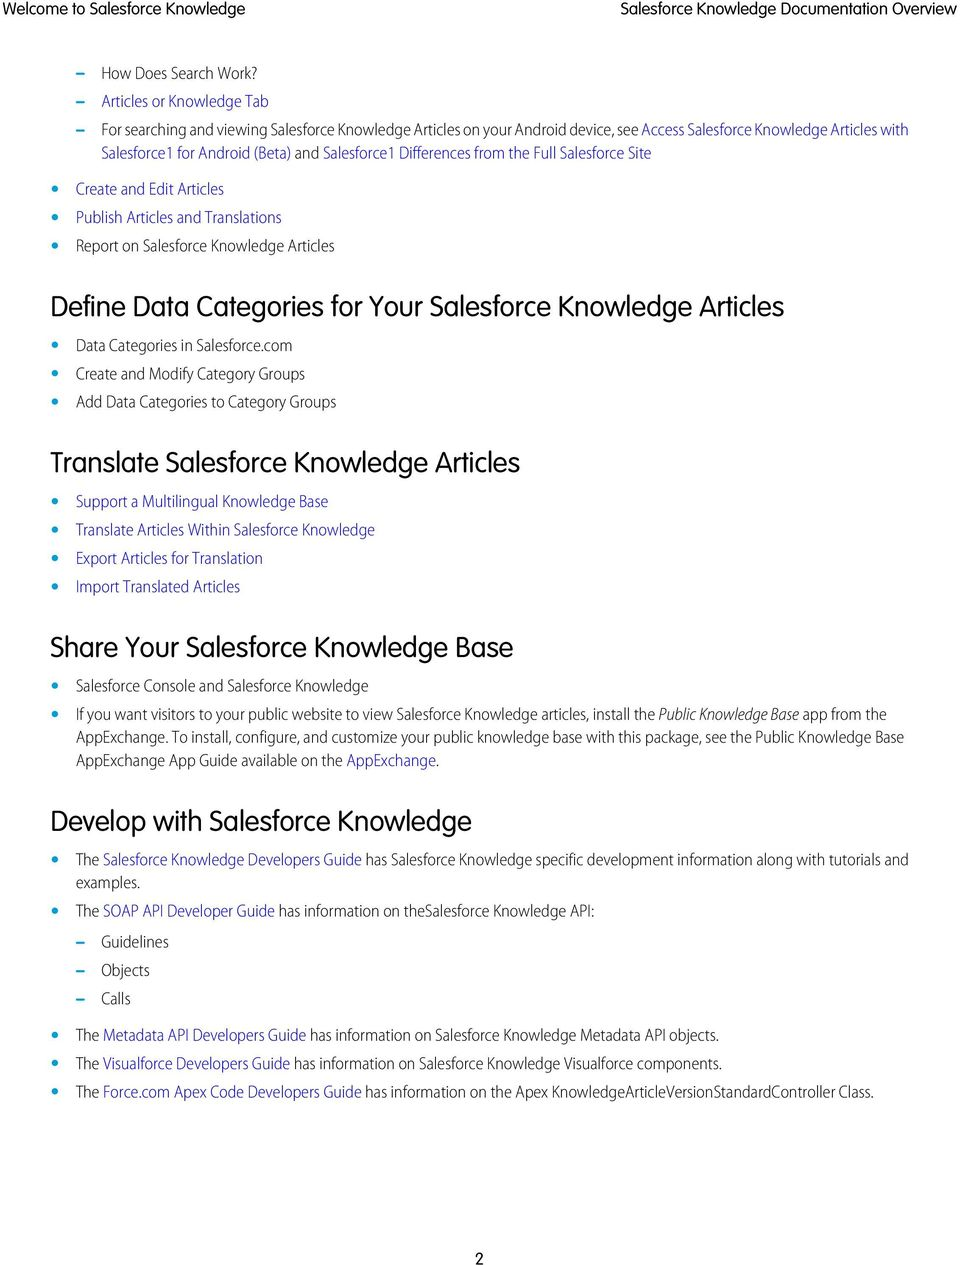 Complete Guide to Salesforce Knowledge - PDF